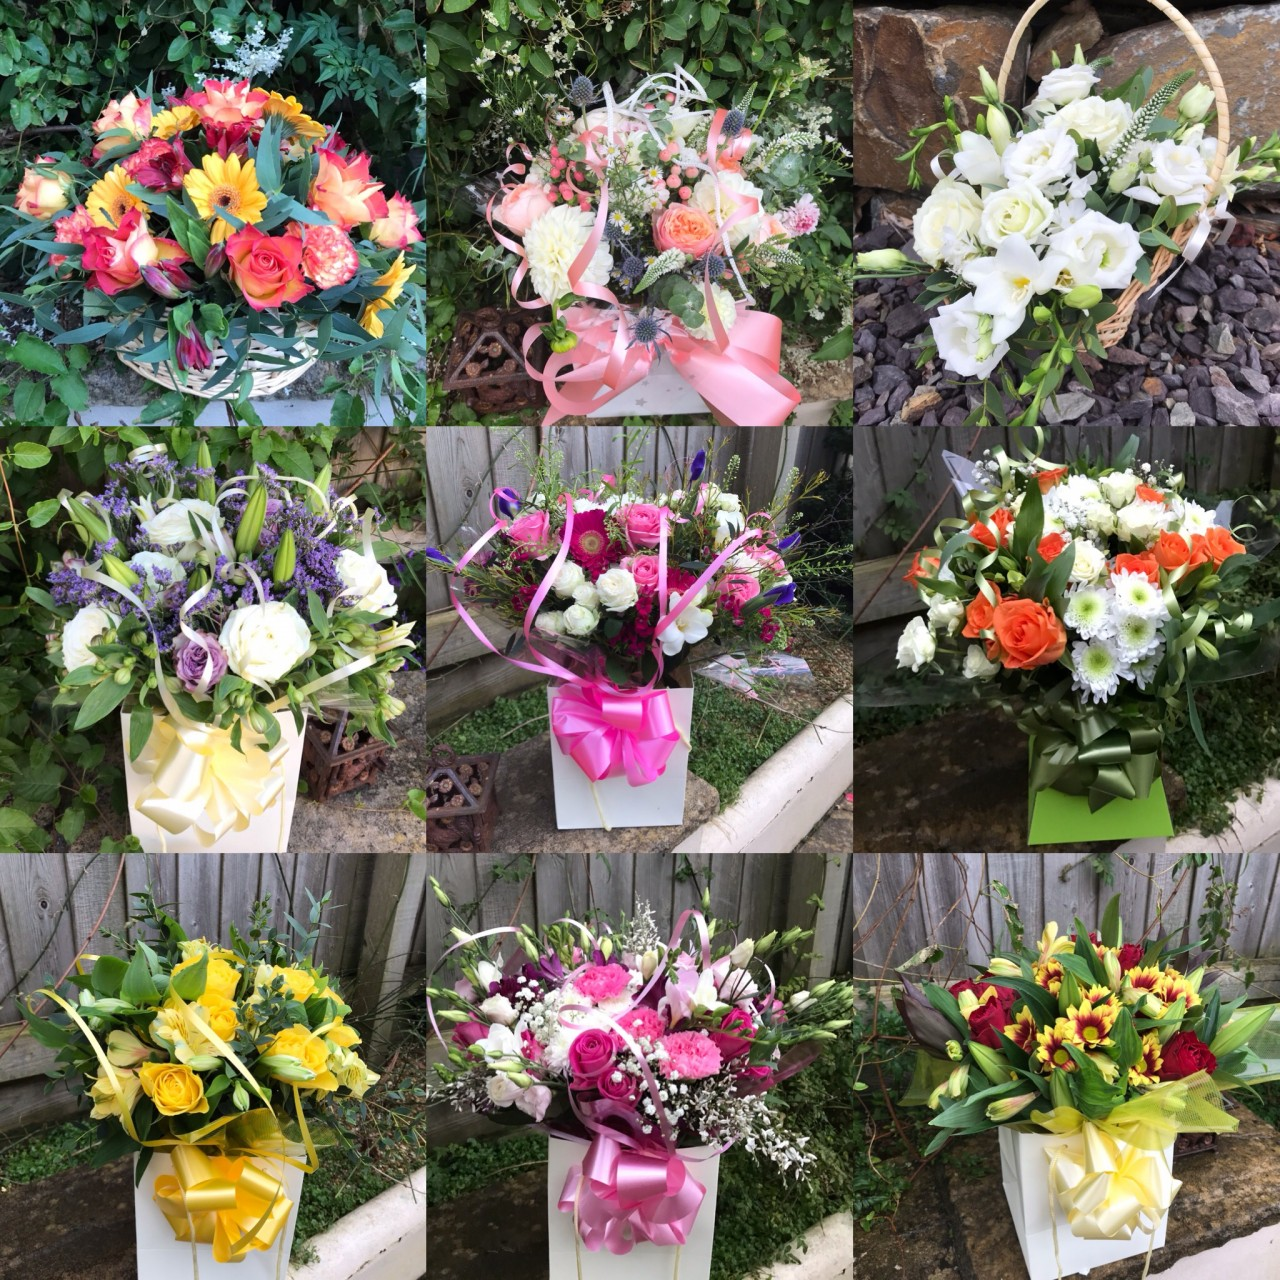 Top tips - Caring for your flowers